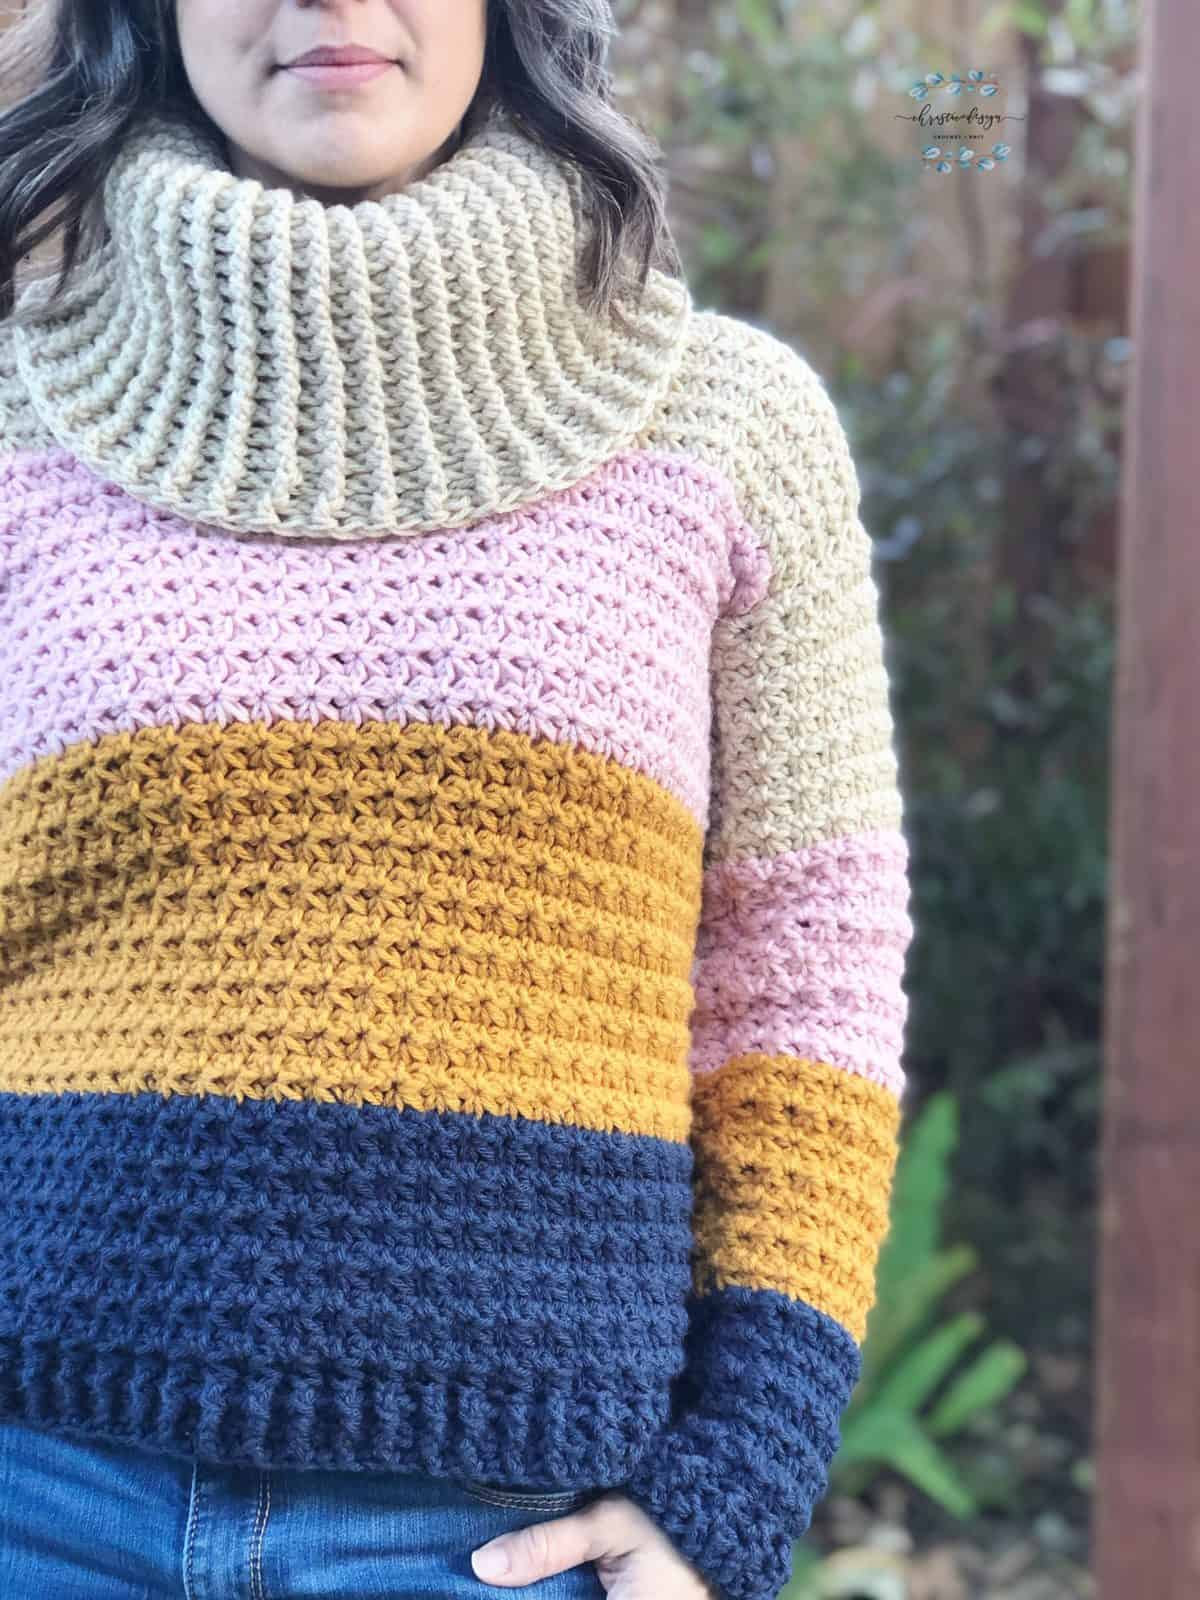 picture of woman in sunset crochet cowl neck sweater pattern